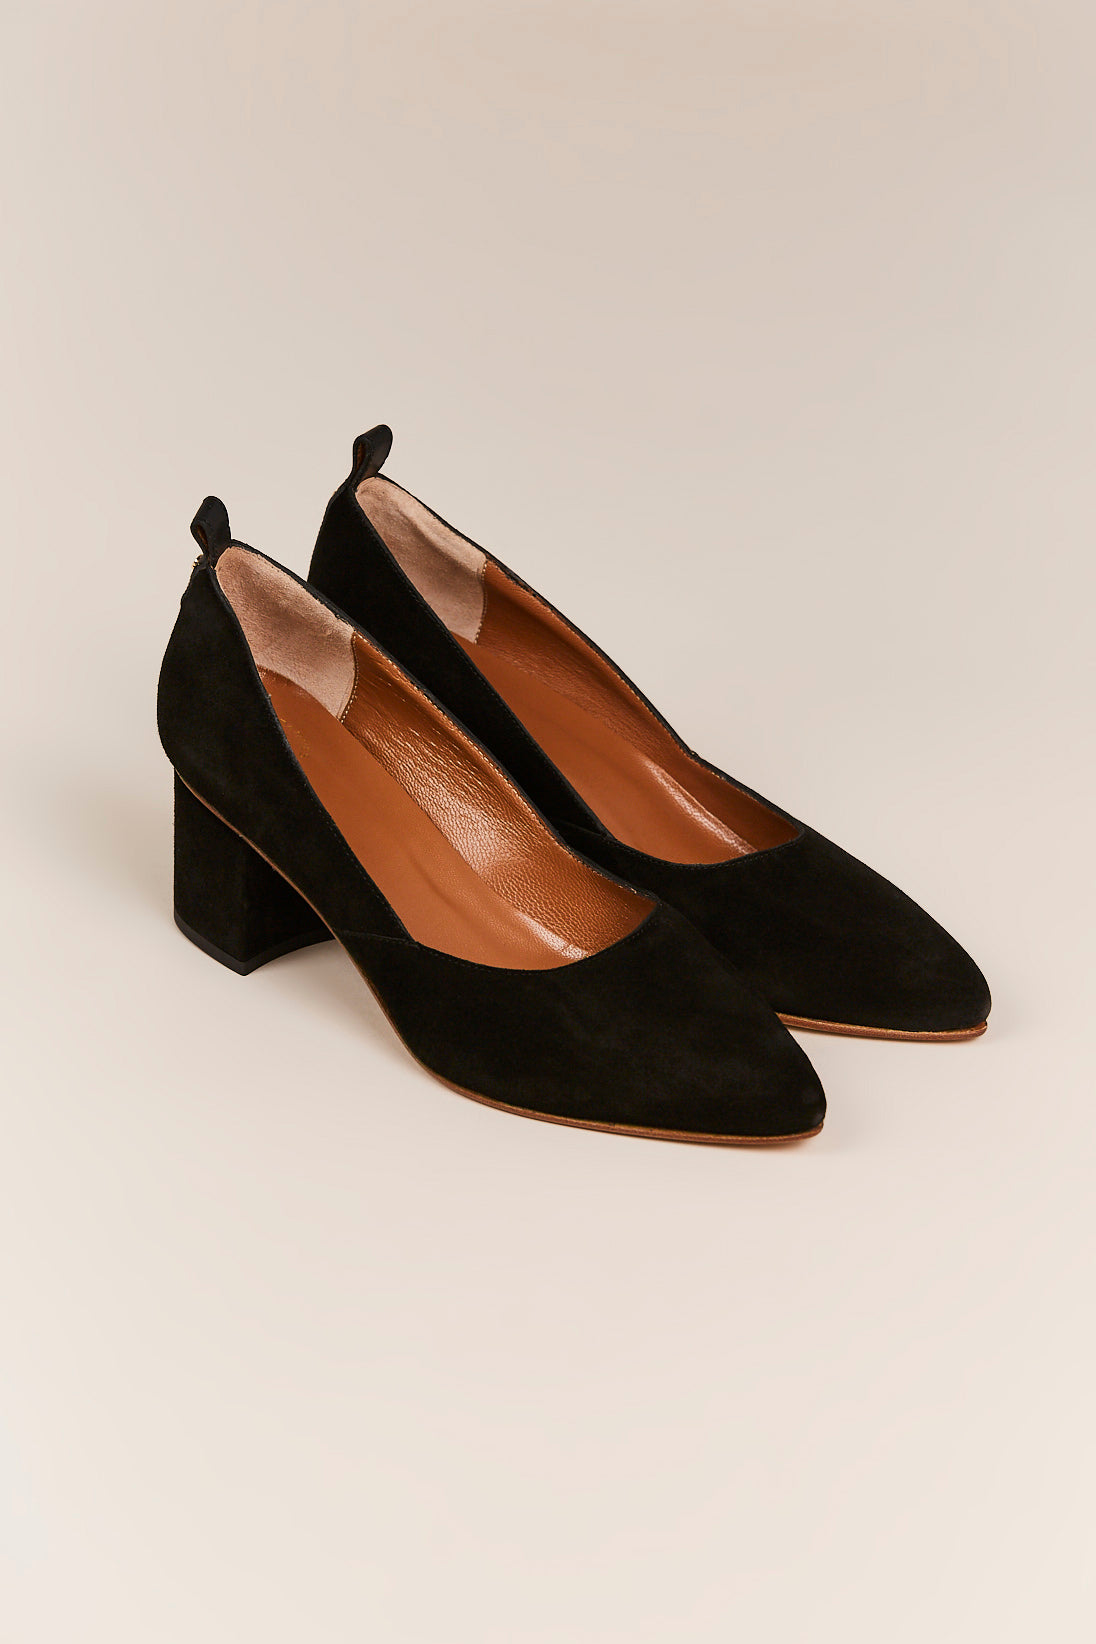 ATP - Nava Pumps, Black